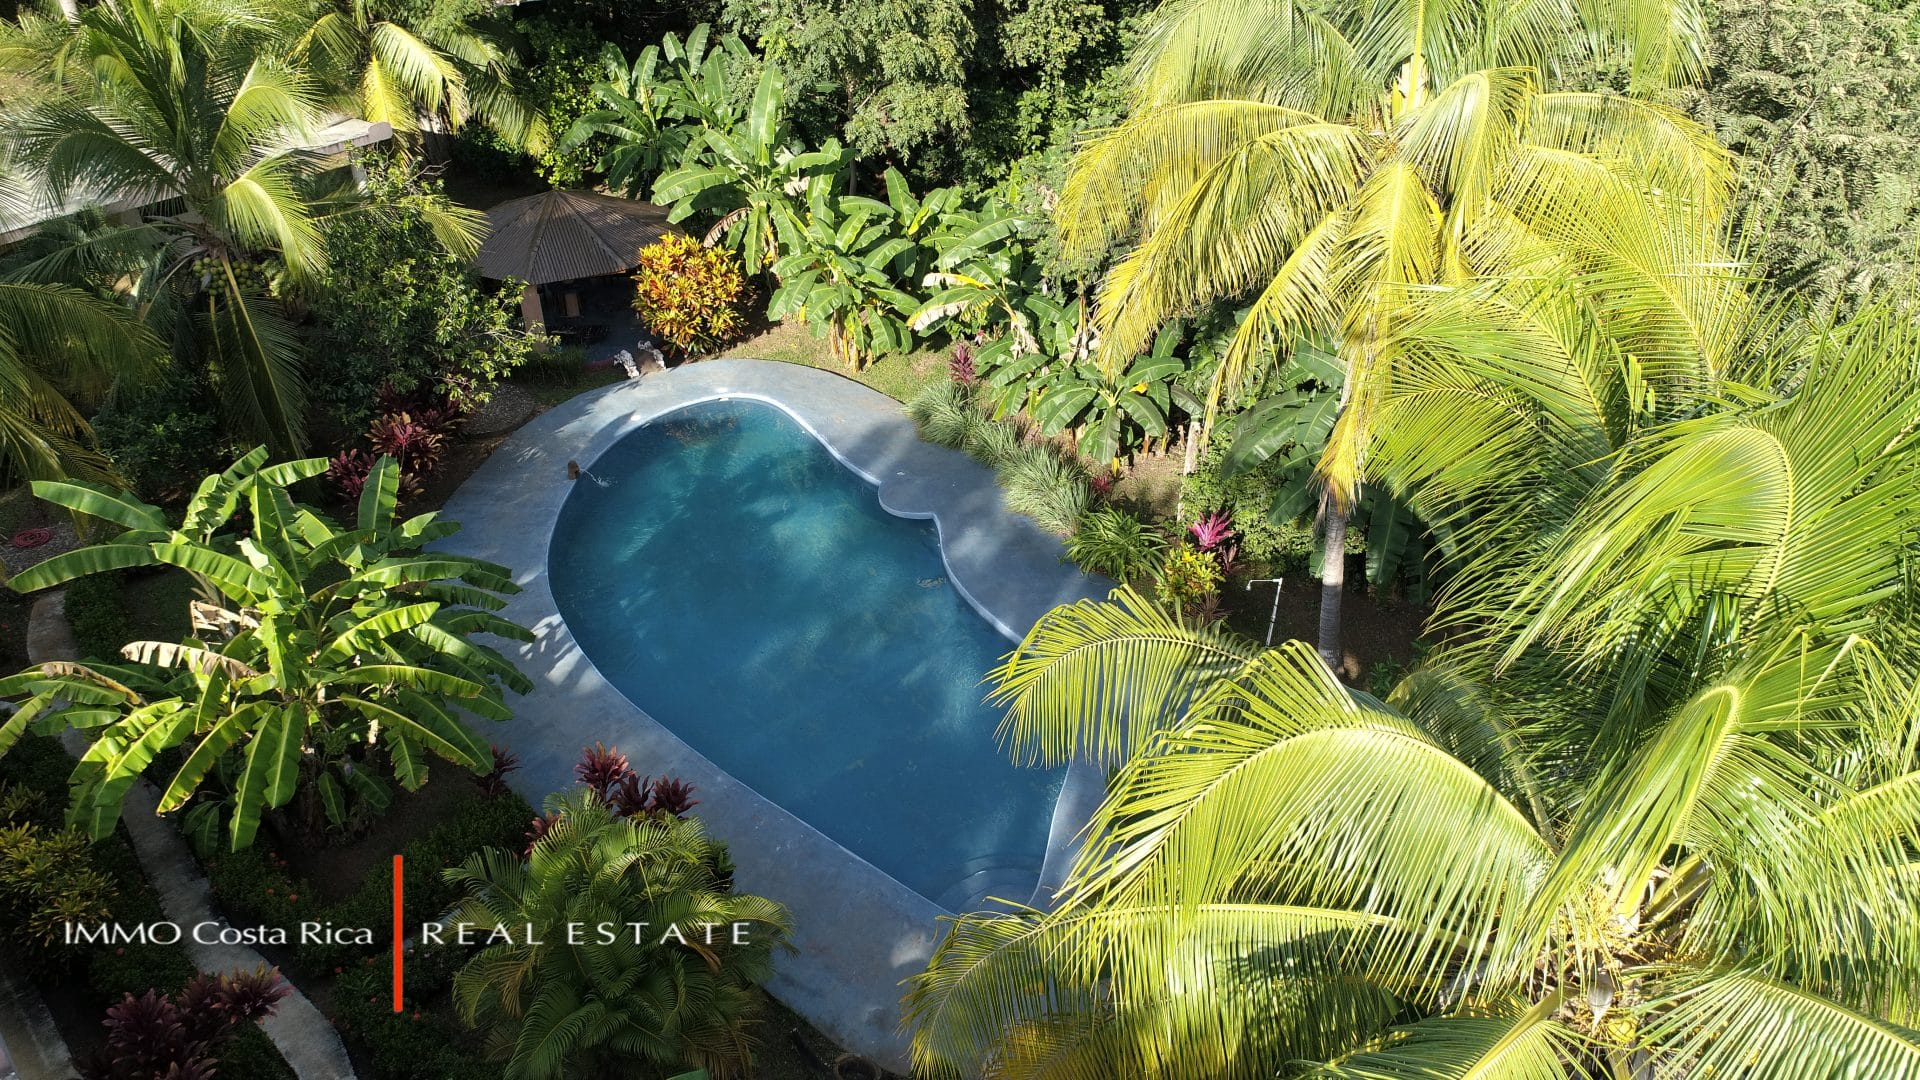 Exceptional Property/Lodge Style to exploit Avellanas Beach: 7 Cottages, a Restaurant, a Pool and Shops